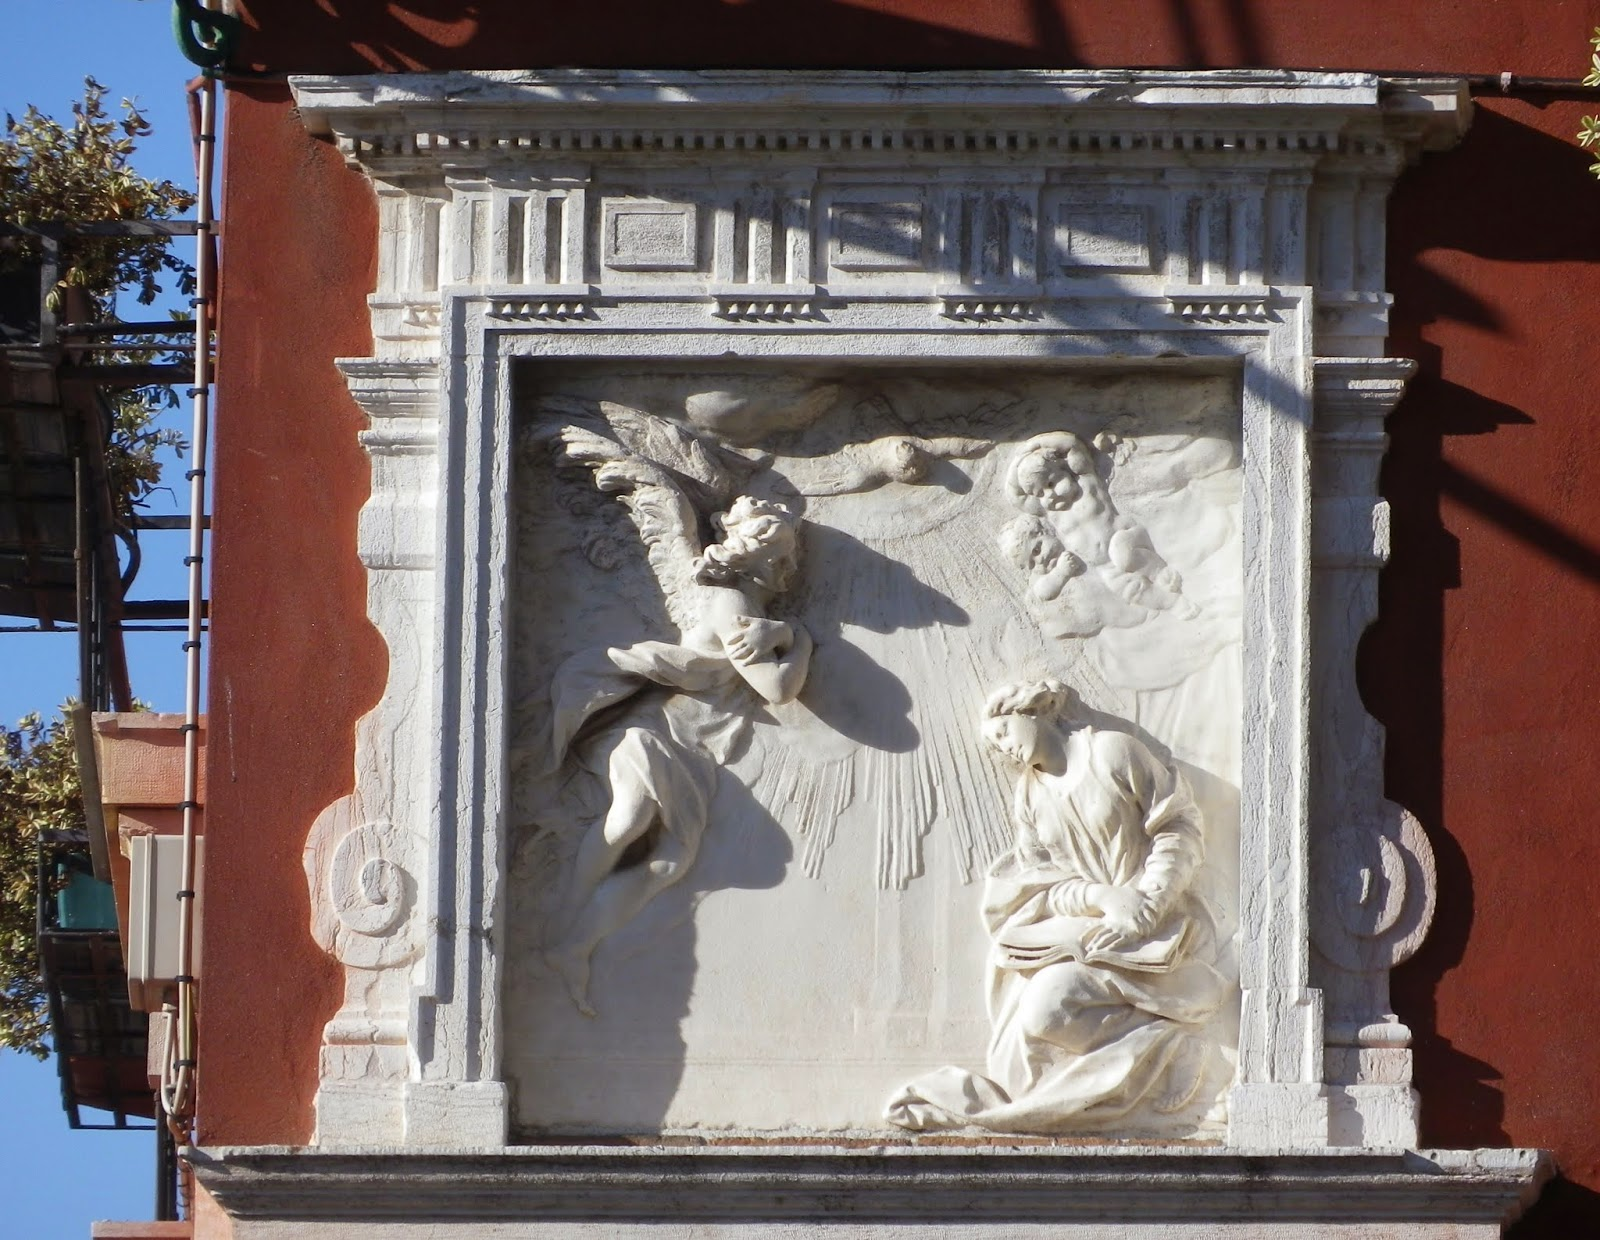 Relief of the Annunciation by Giusto Le Court on the wall of a house overlooking the Ponte del Cavallo in Venice